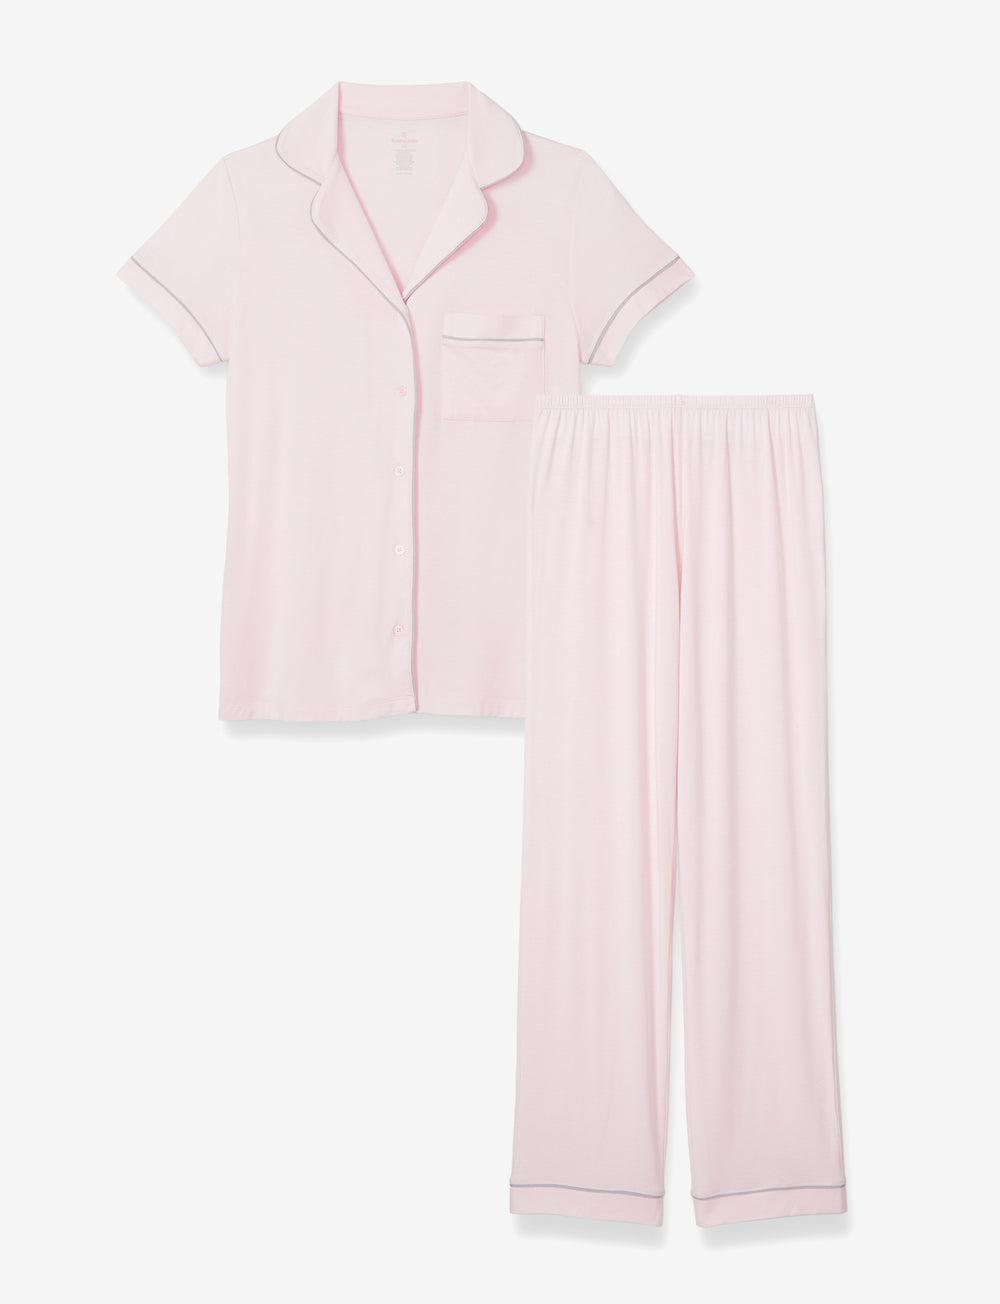 Mother's Day PJ Set Blush Top & Pant Details Image